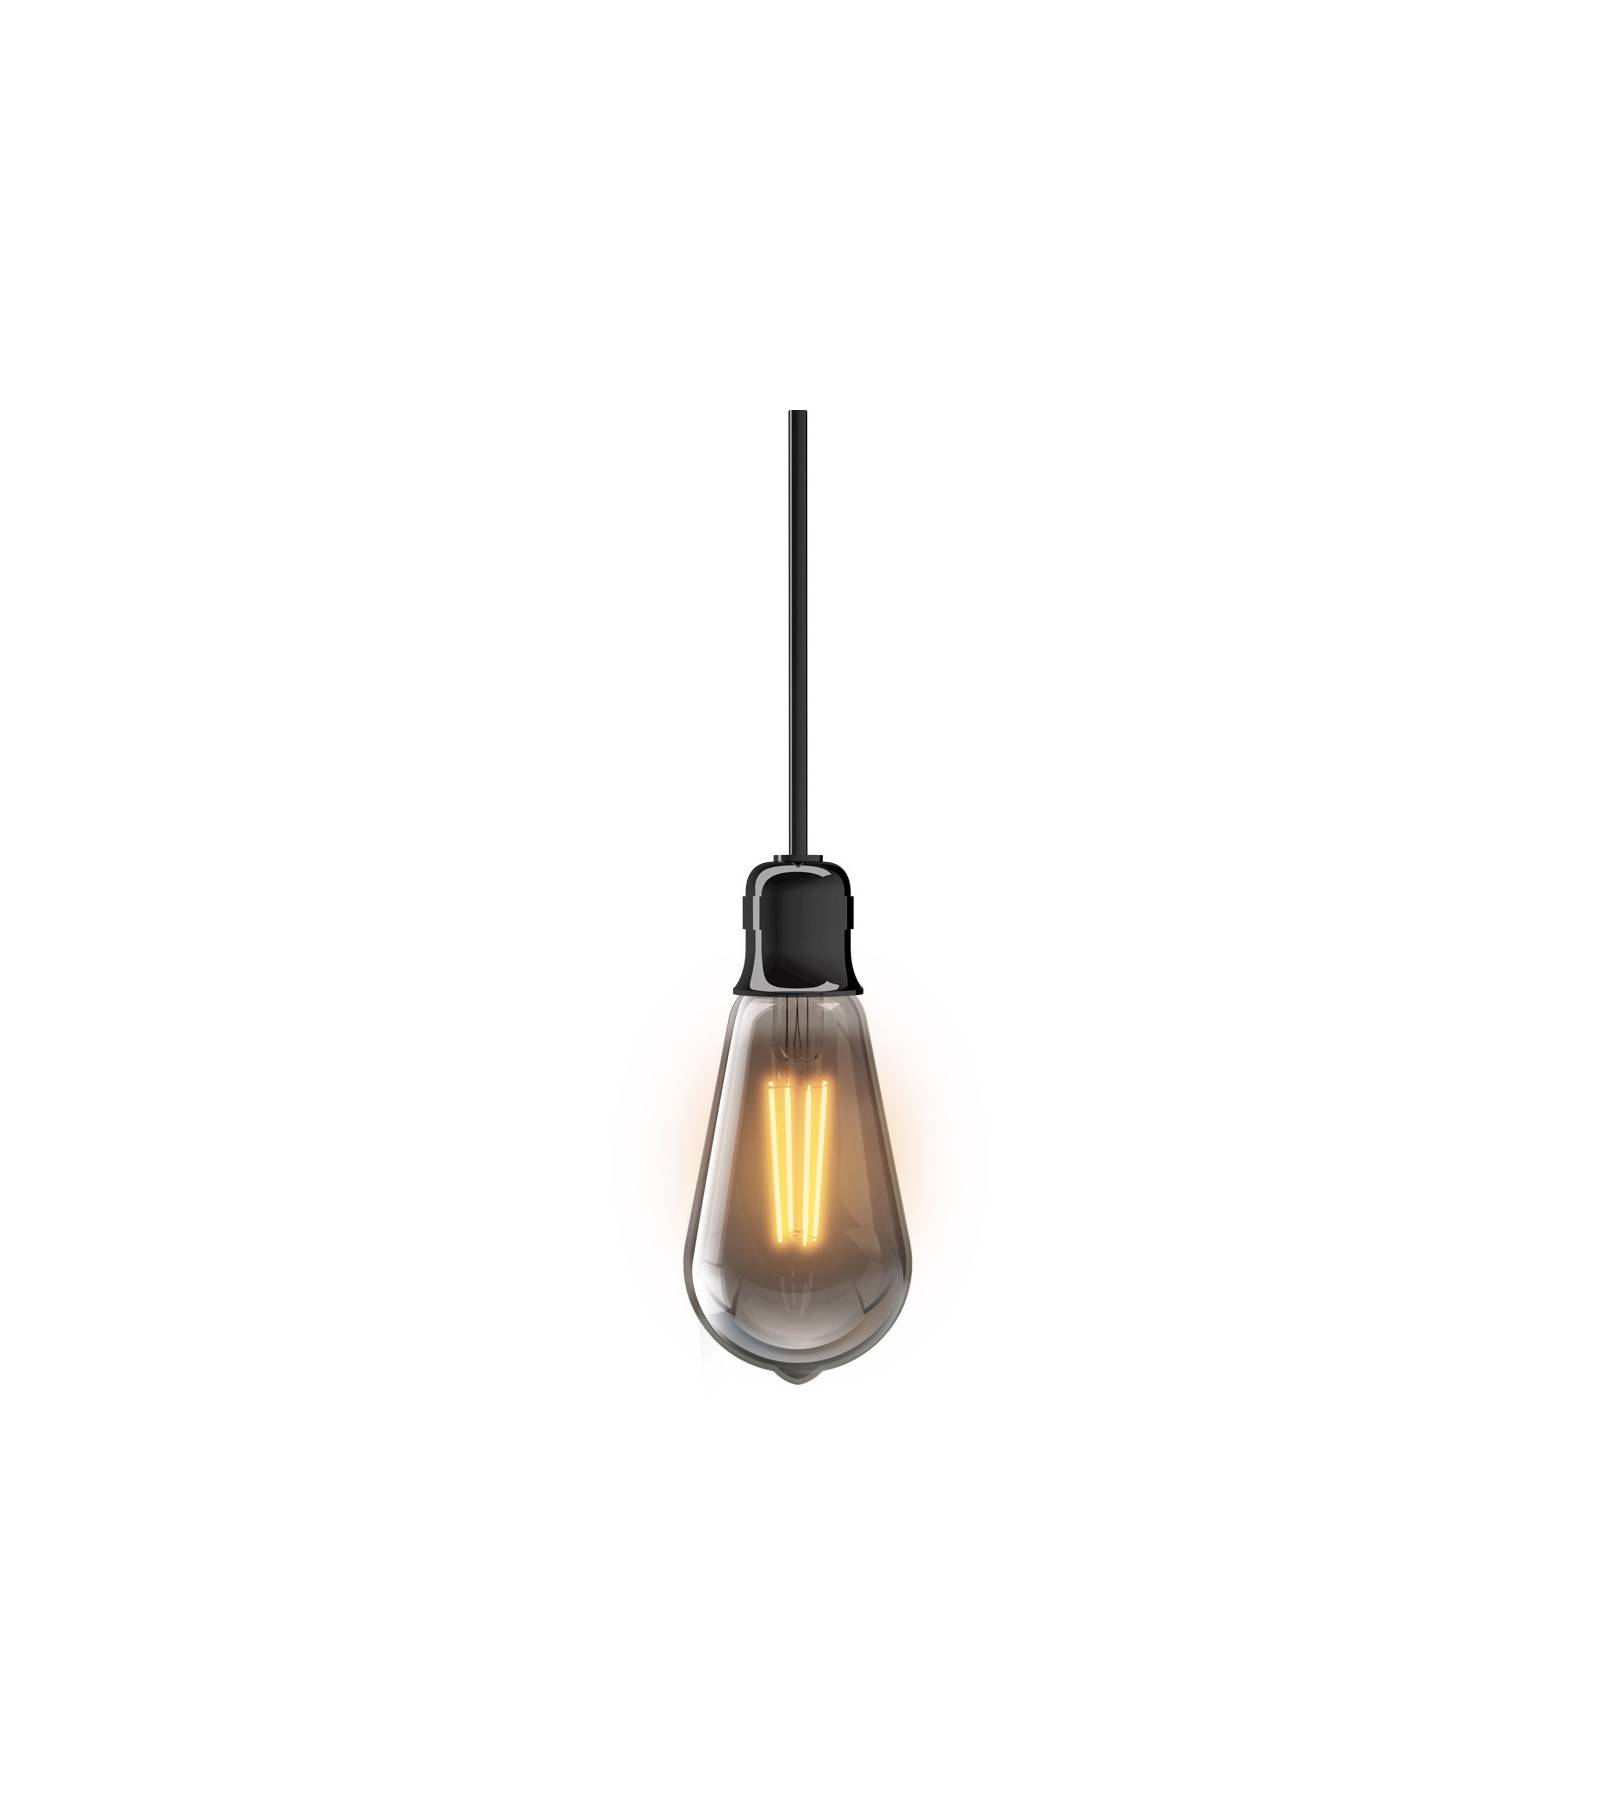 Luminaire Ampoule Vintage Plafonnier Ampoule Vintage Beautiful Suspension Lumineuse